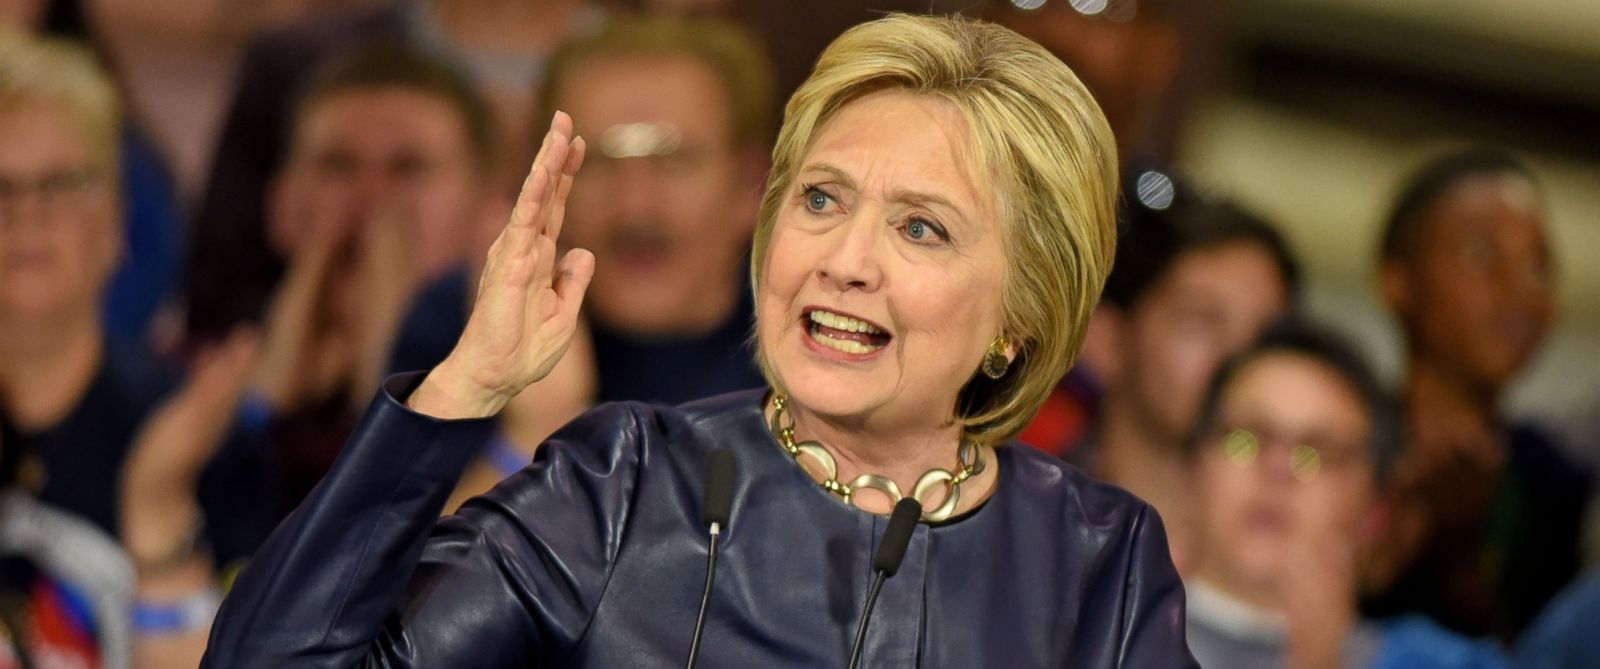 PHOTO: Democratic presidential candidate Hillary Clinton held a campaign rally, March 12, 2016, in Cleveland.